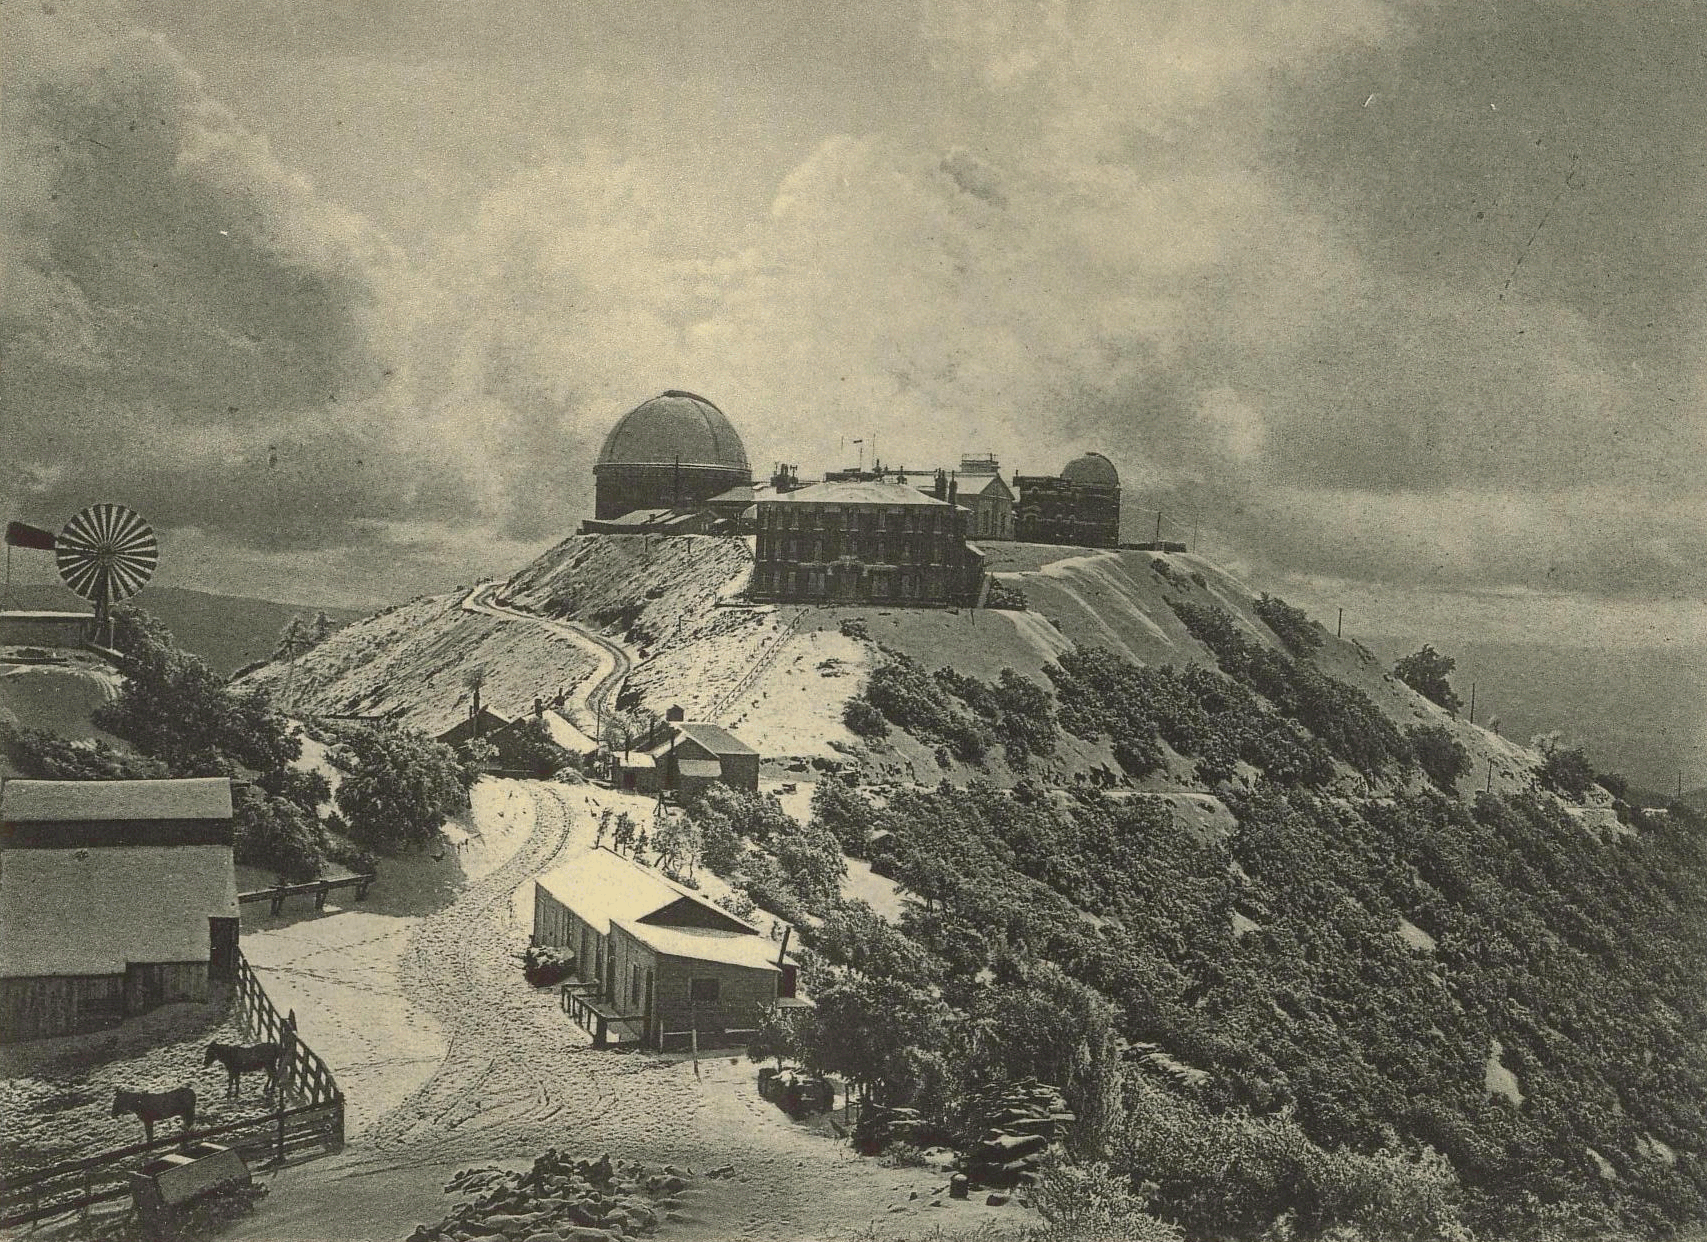 Historic Image of Lick Observatory on top of Hamilton Mountain California, while Highway 130, San Antonio Valley Road, was still dirt